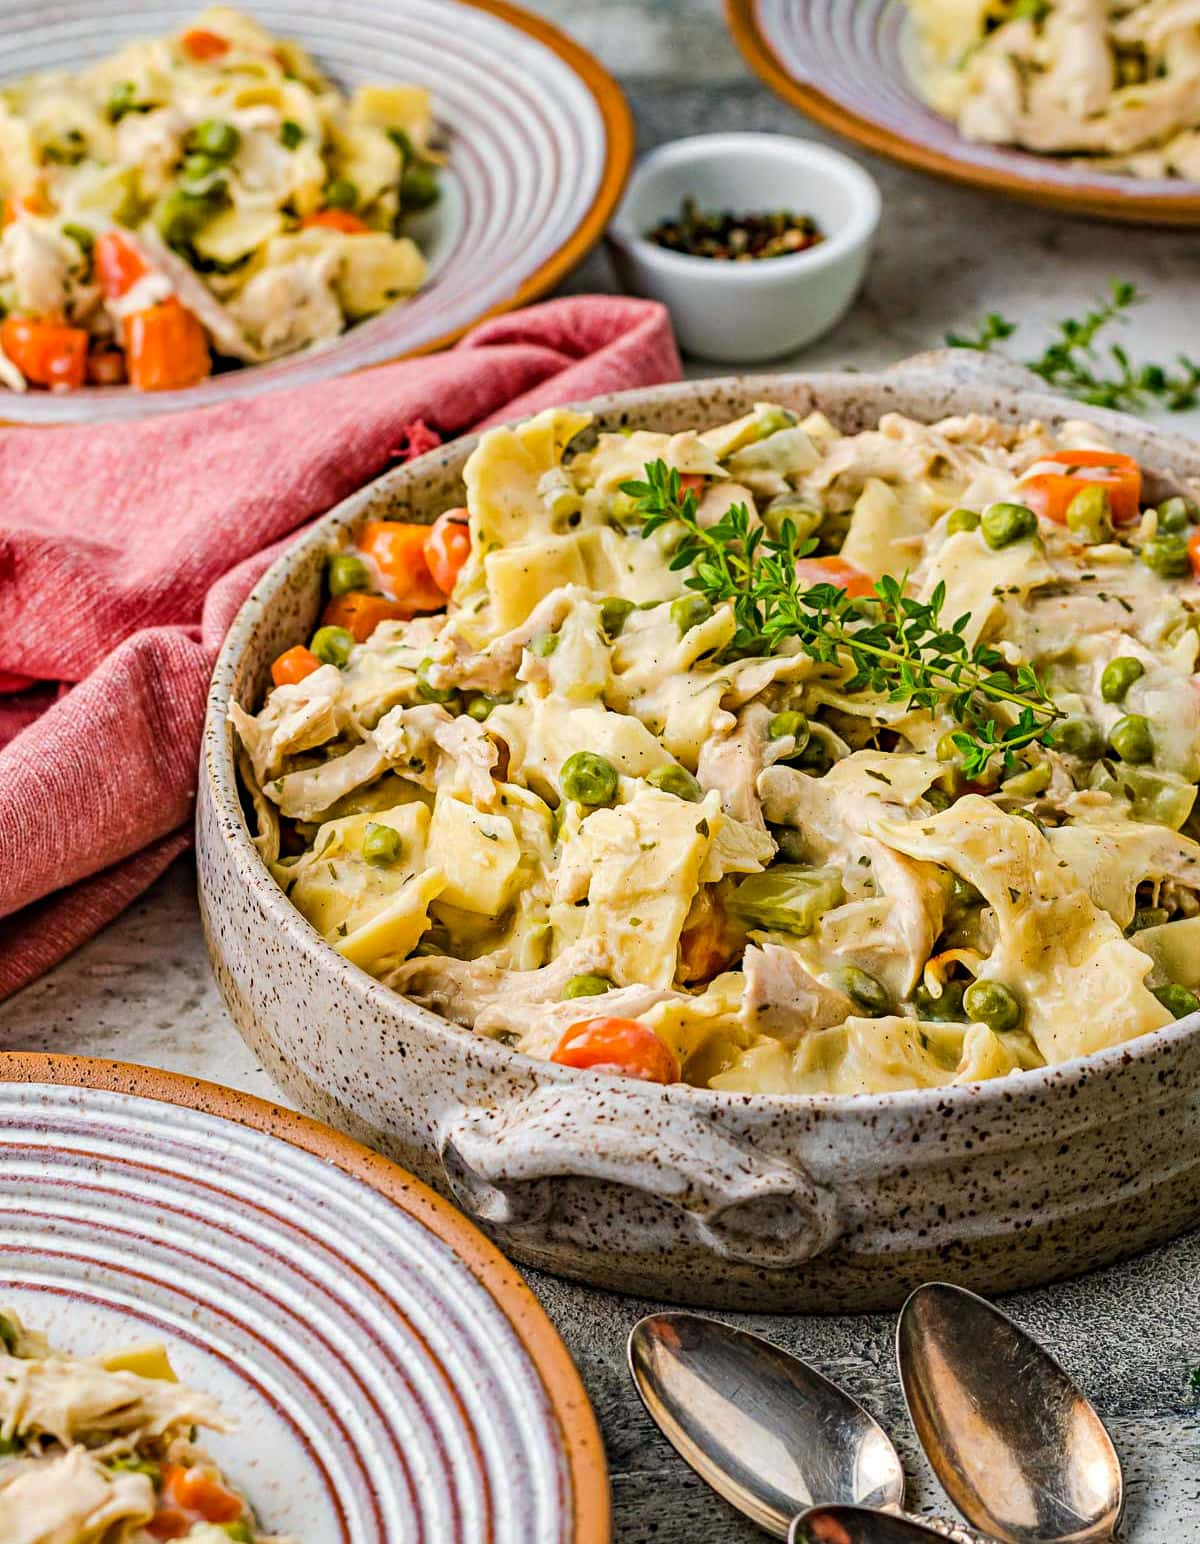 large pottery bowl filled with chicken noodles recipe topped with fresh thyme. Small dinner plates also have servings on them.